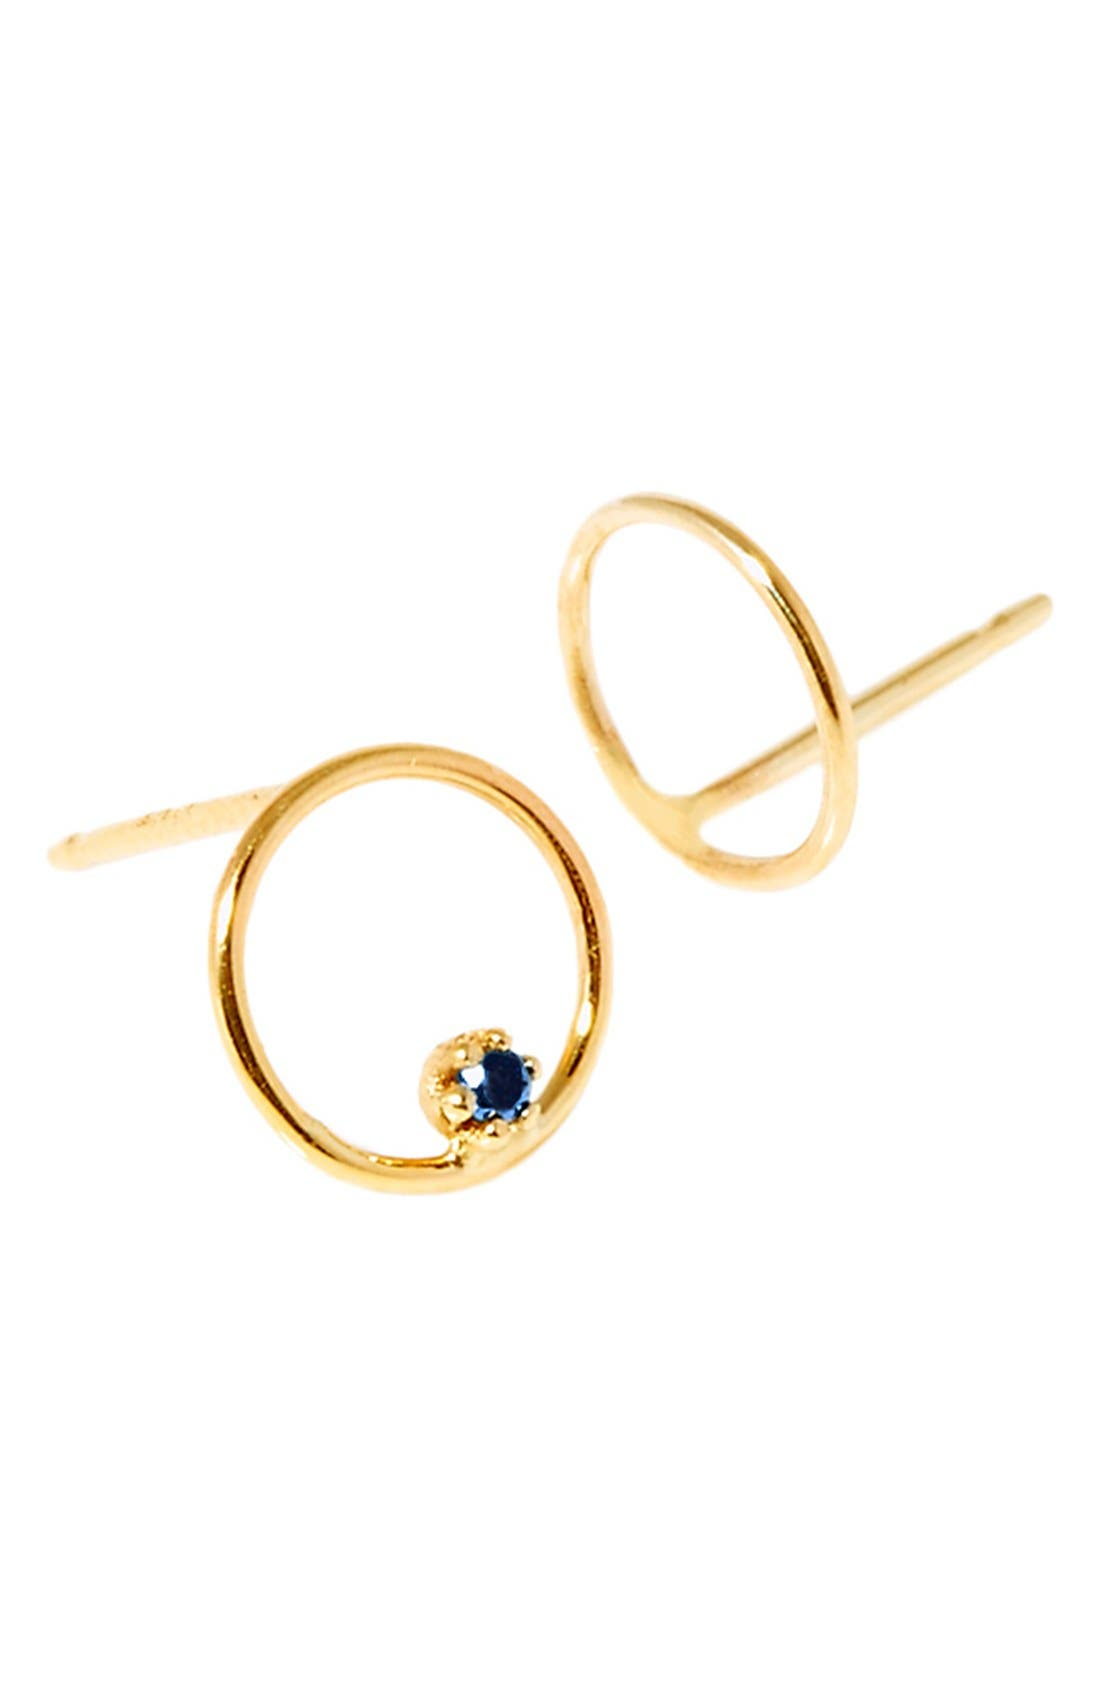 'Stone Bubble' Mismatched Gold & Sapphire Earrings,                             Main thumbnail 1, color,